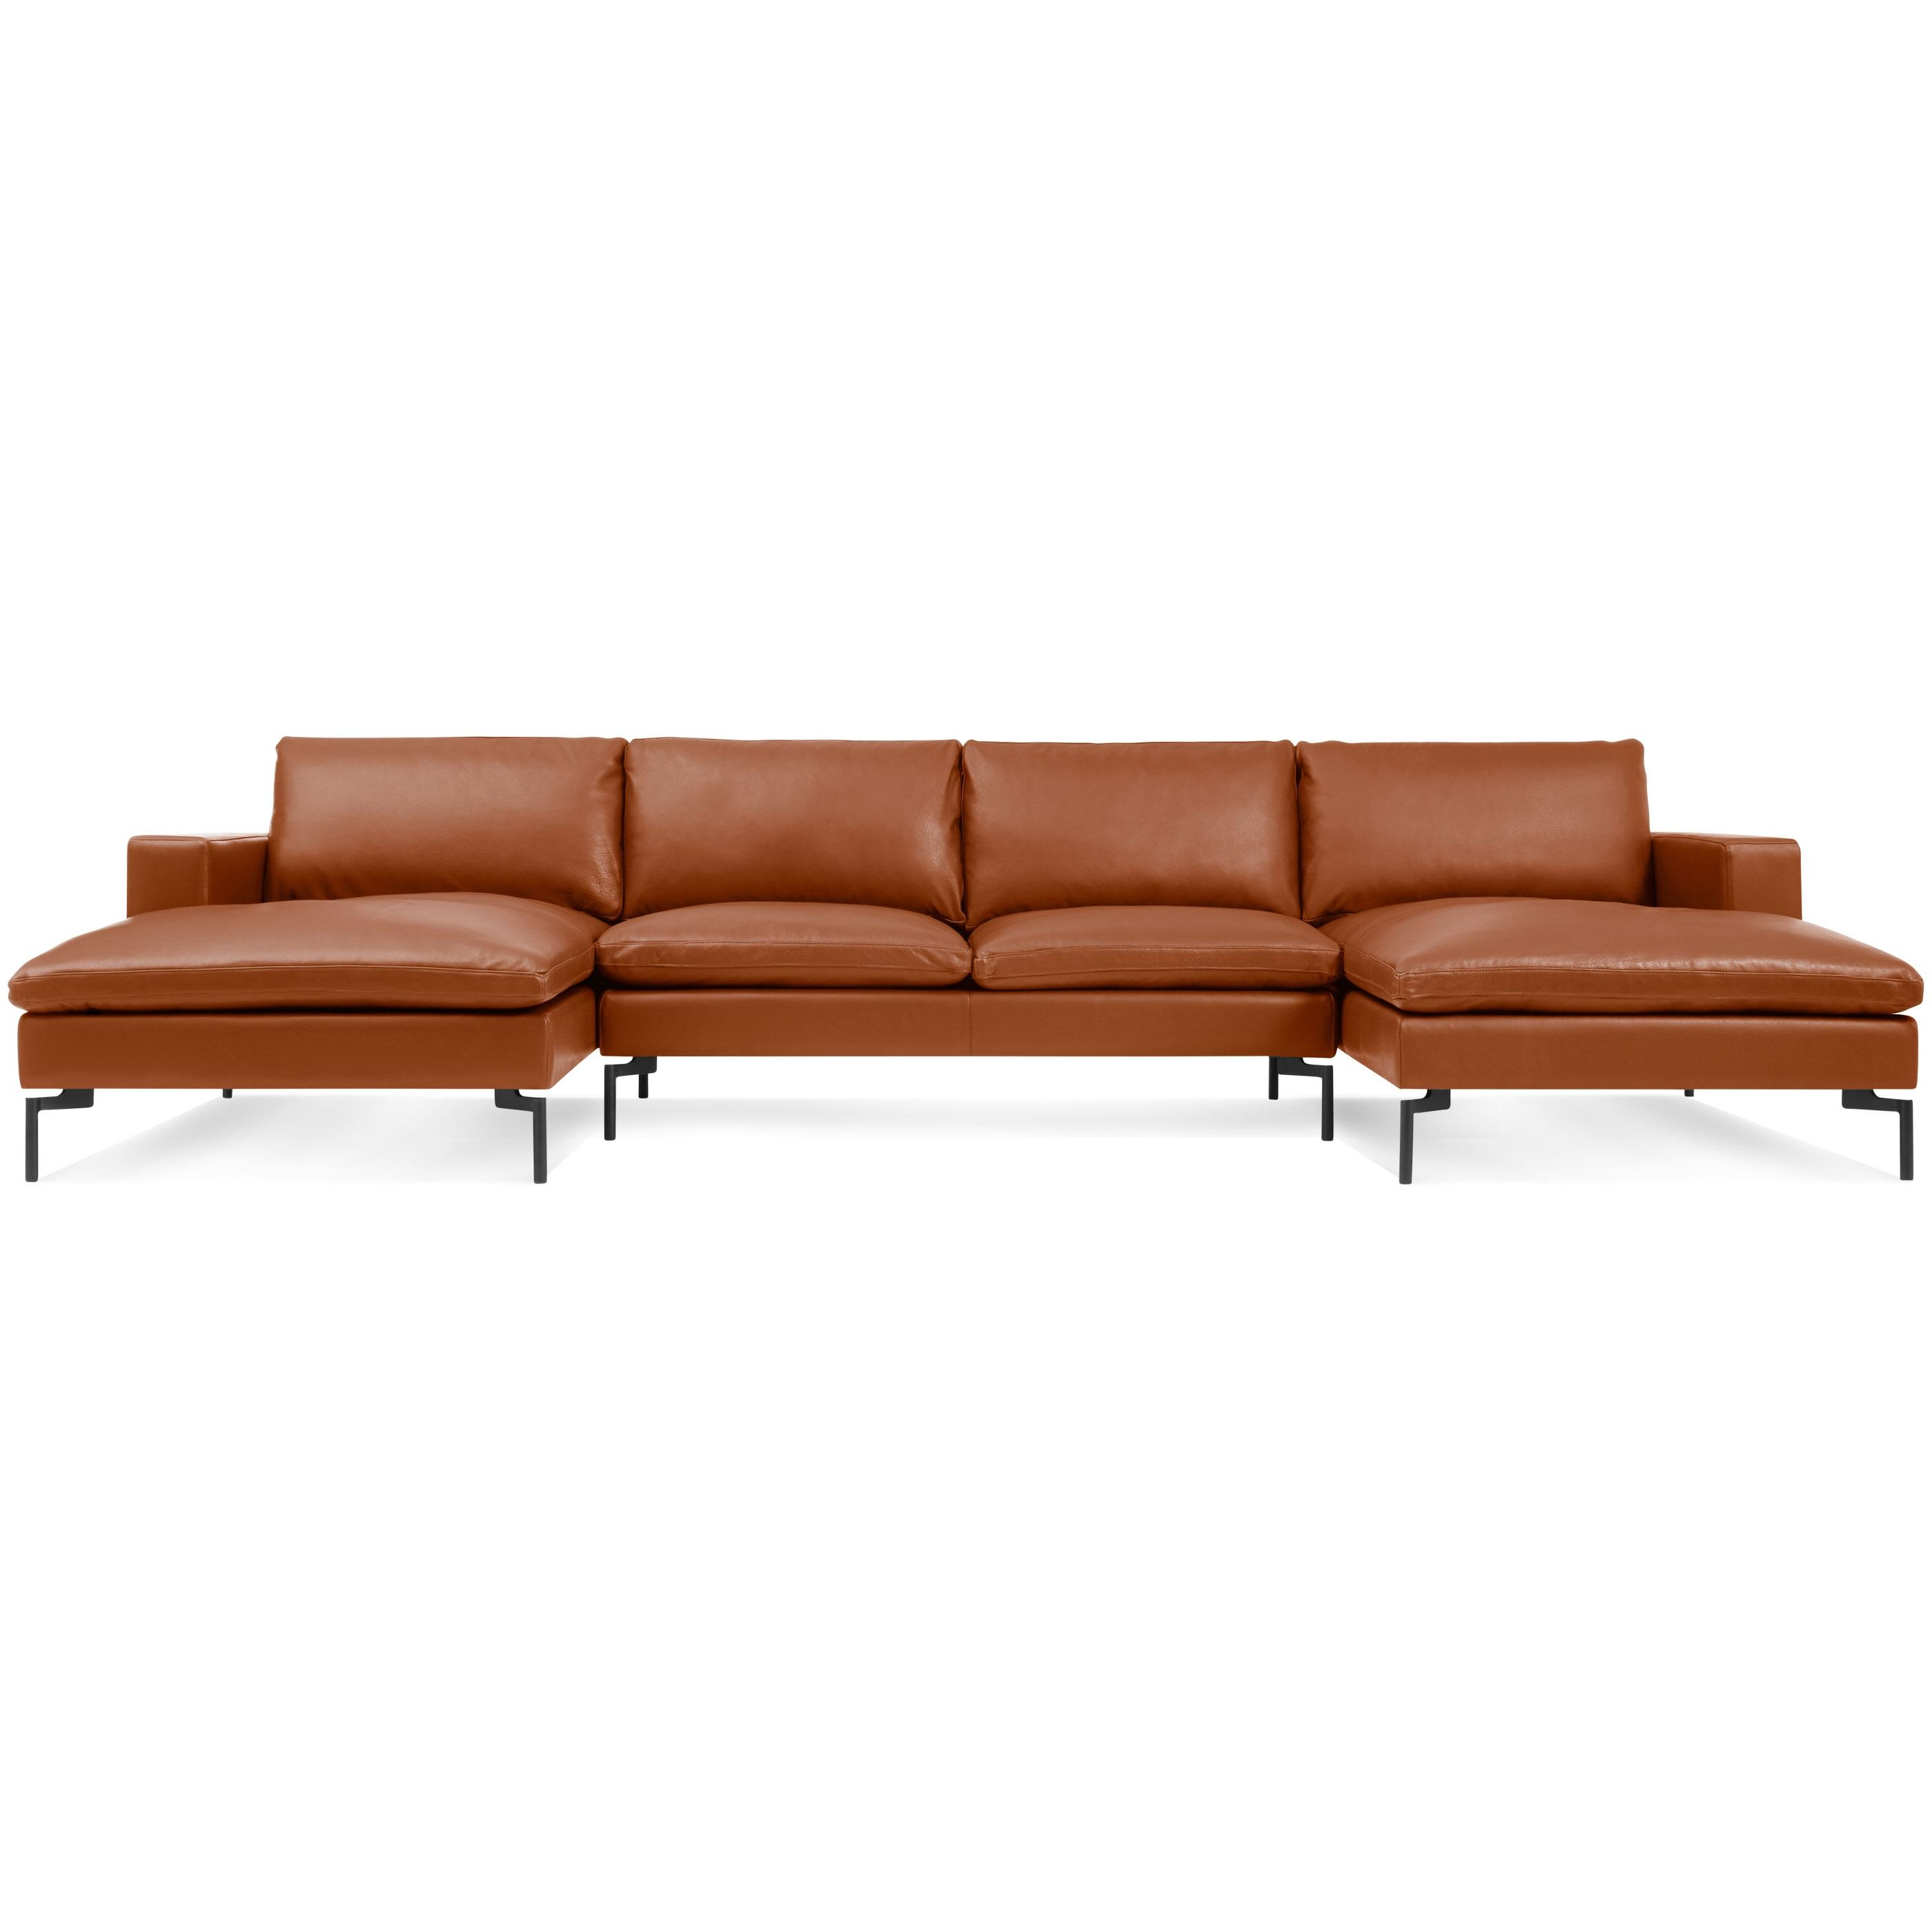 New Standard U-Shaped Leather Sectional Sofa | Blu Dot inside U Shaped Leather Sectional Sofa